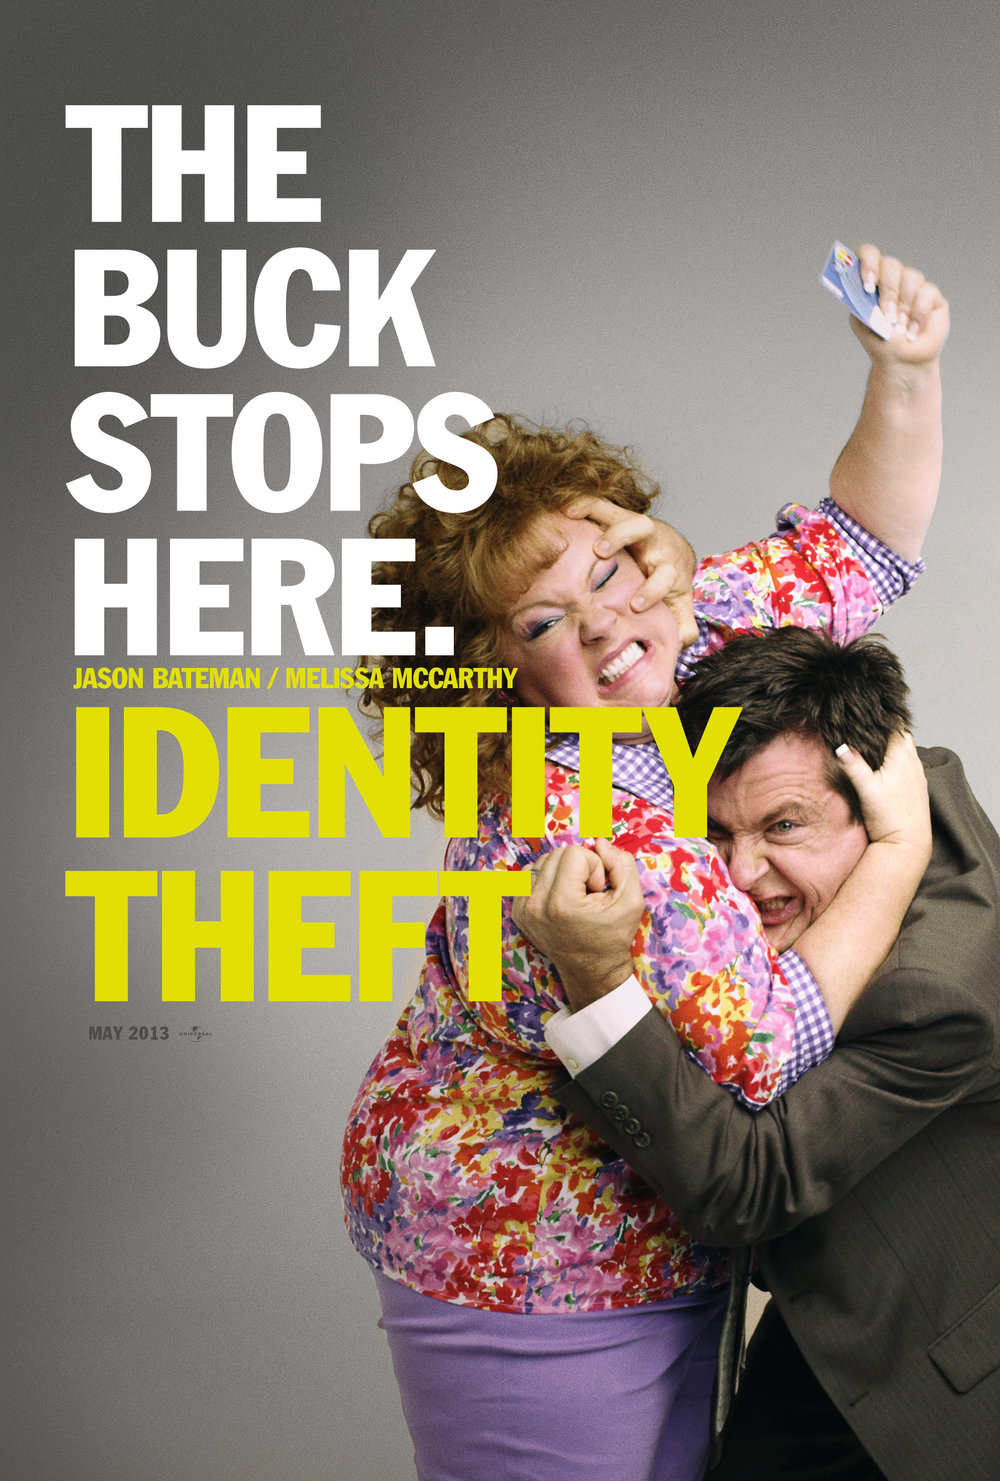 ID_theft_rnd1_011a copy.jpg